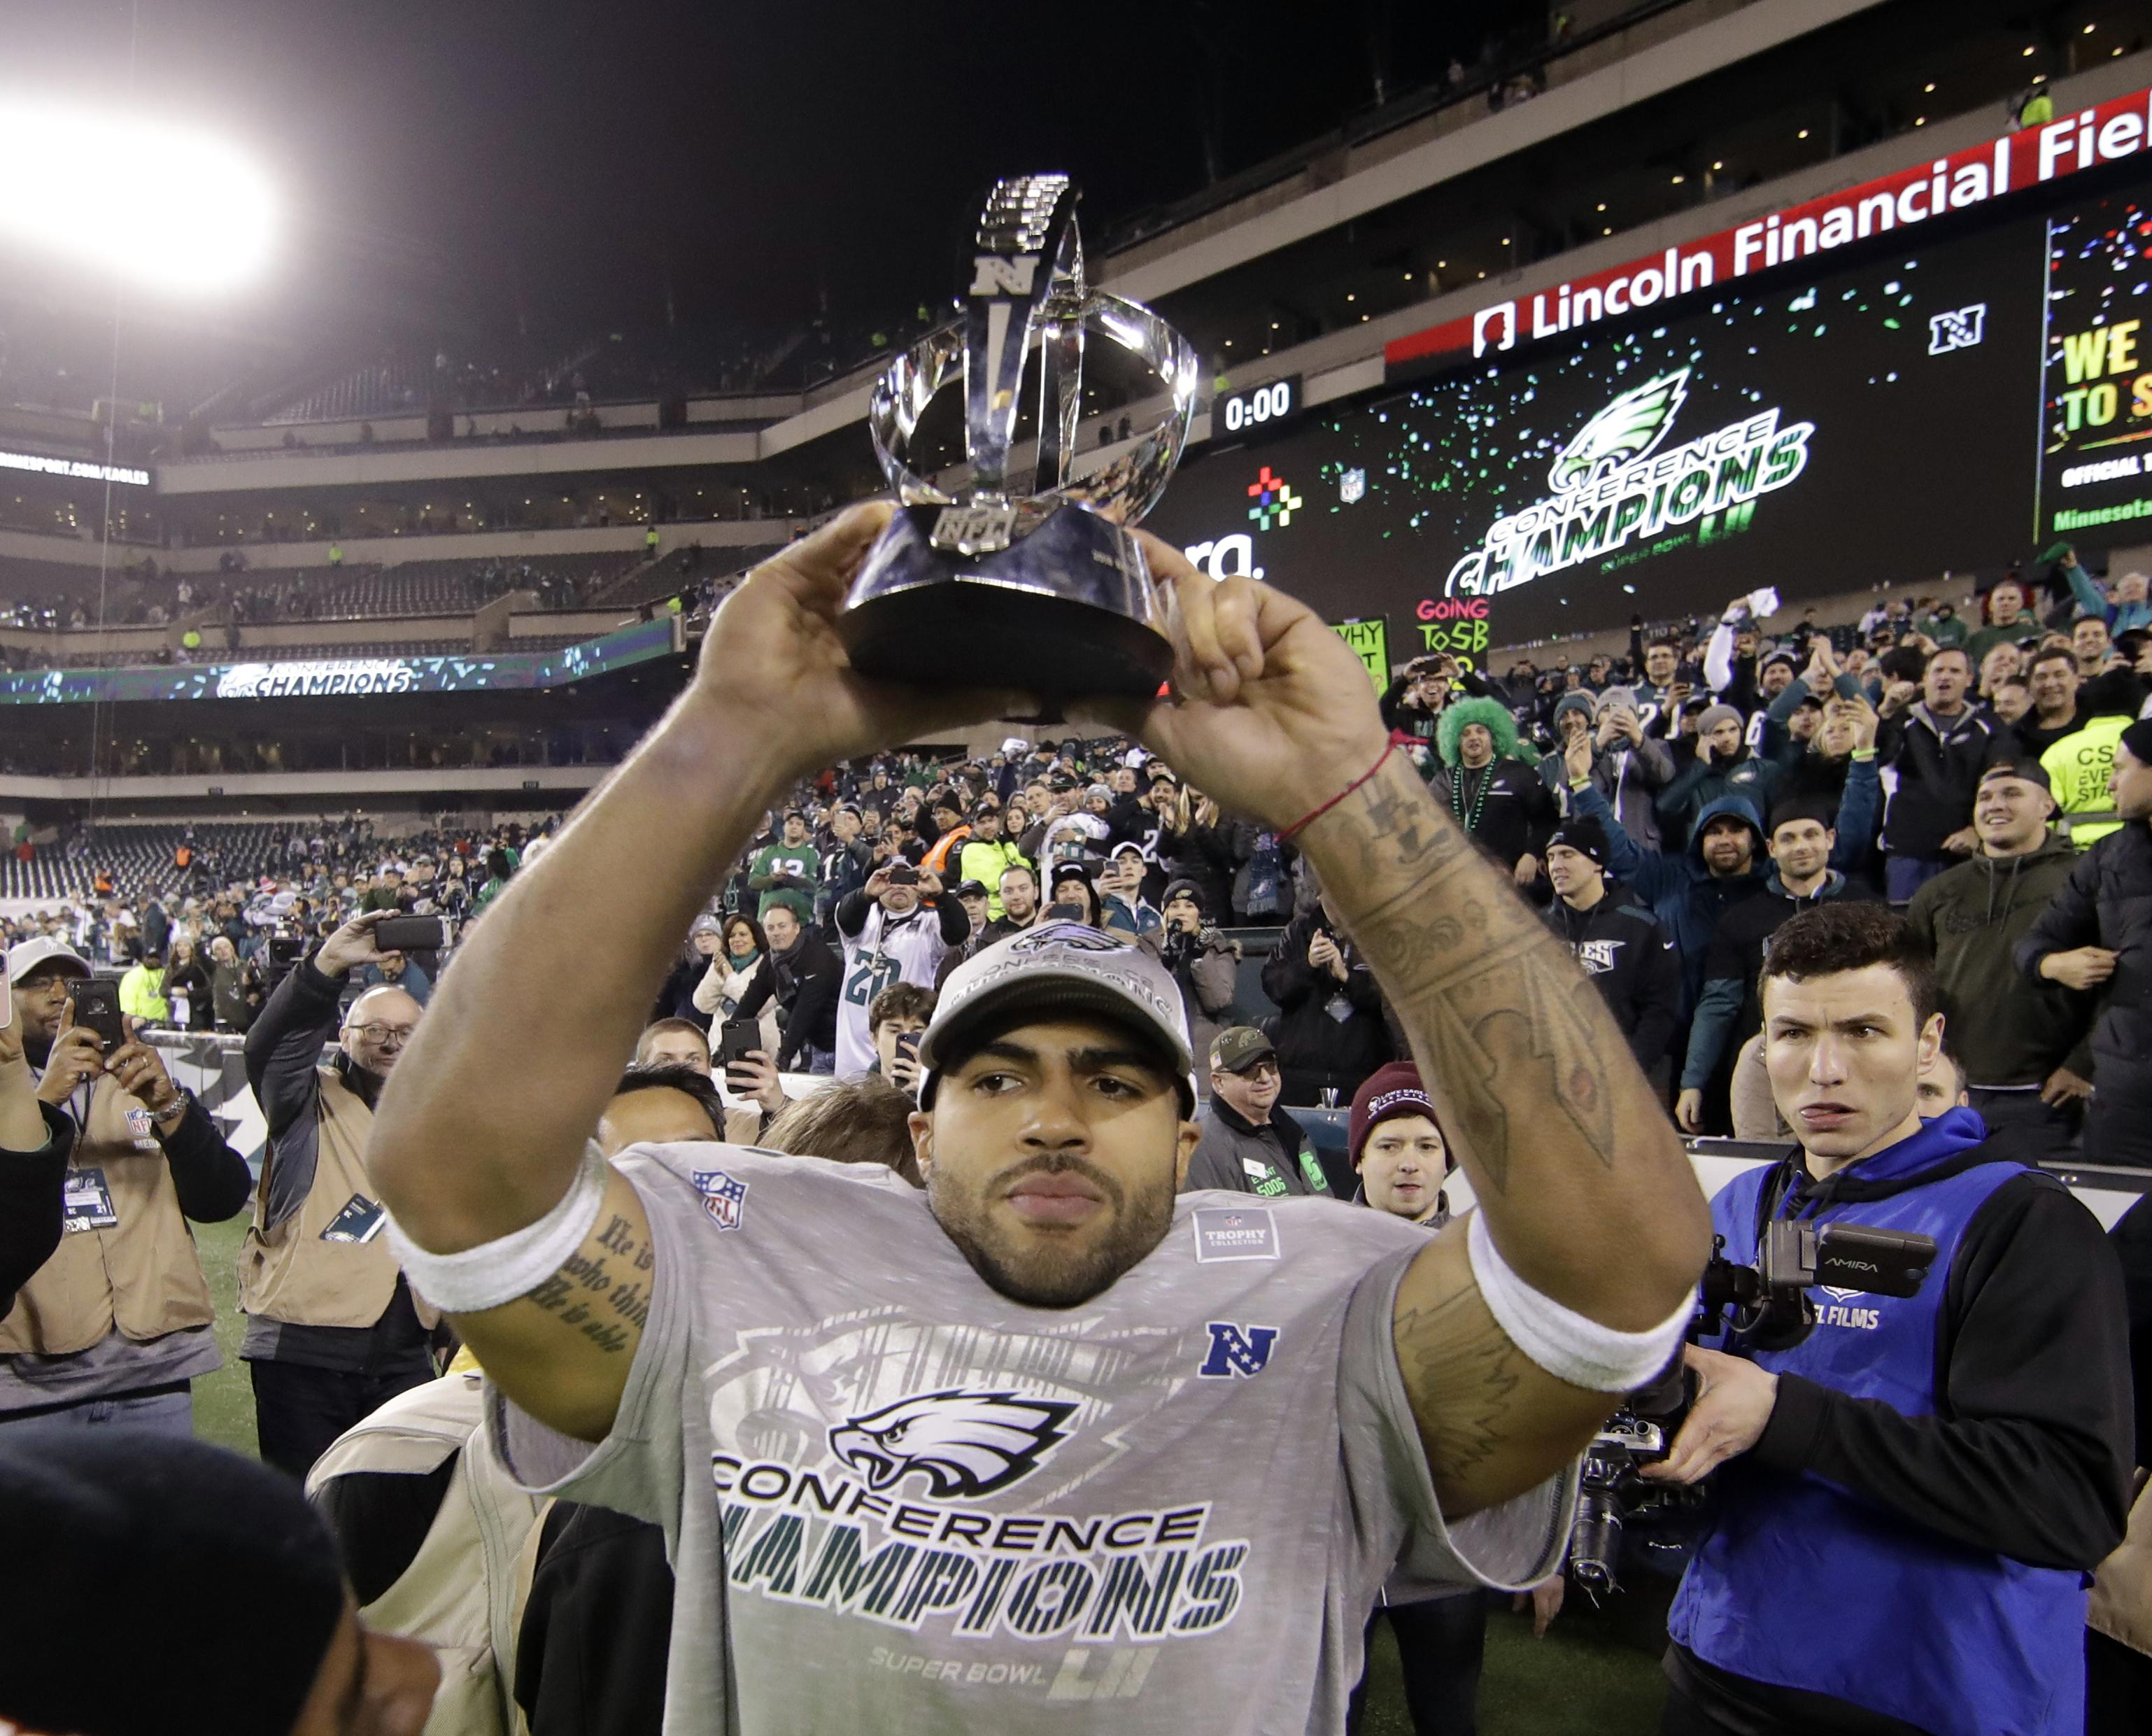 Mychal Kendricks is a former Super Bowl winner - but could now be preparing for some hard time